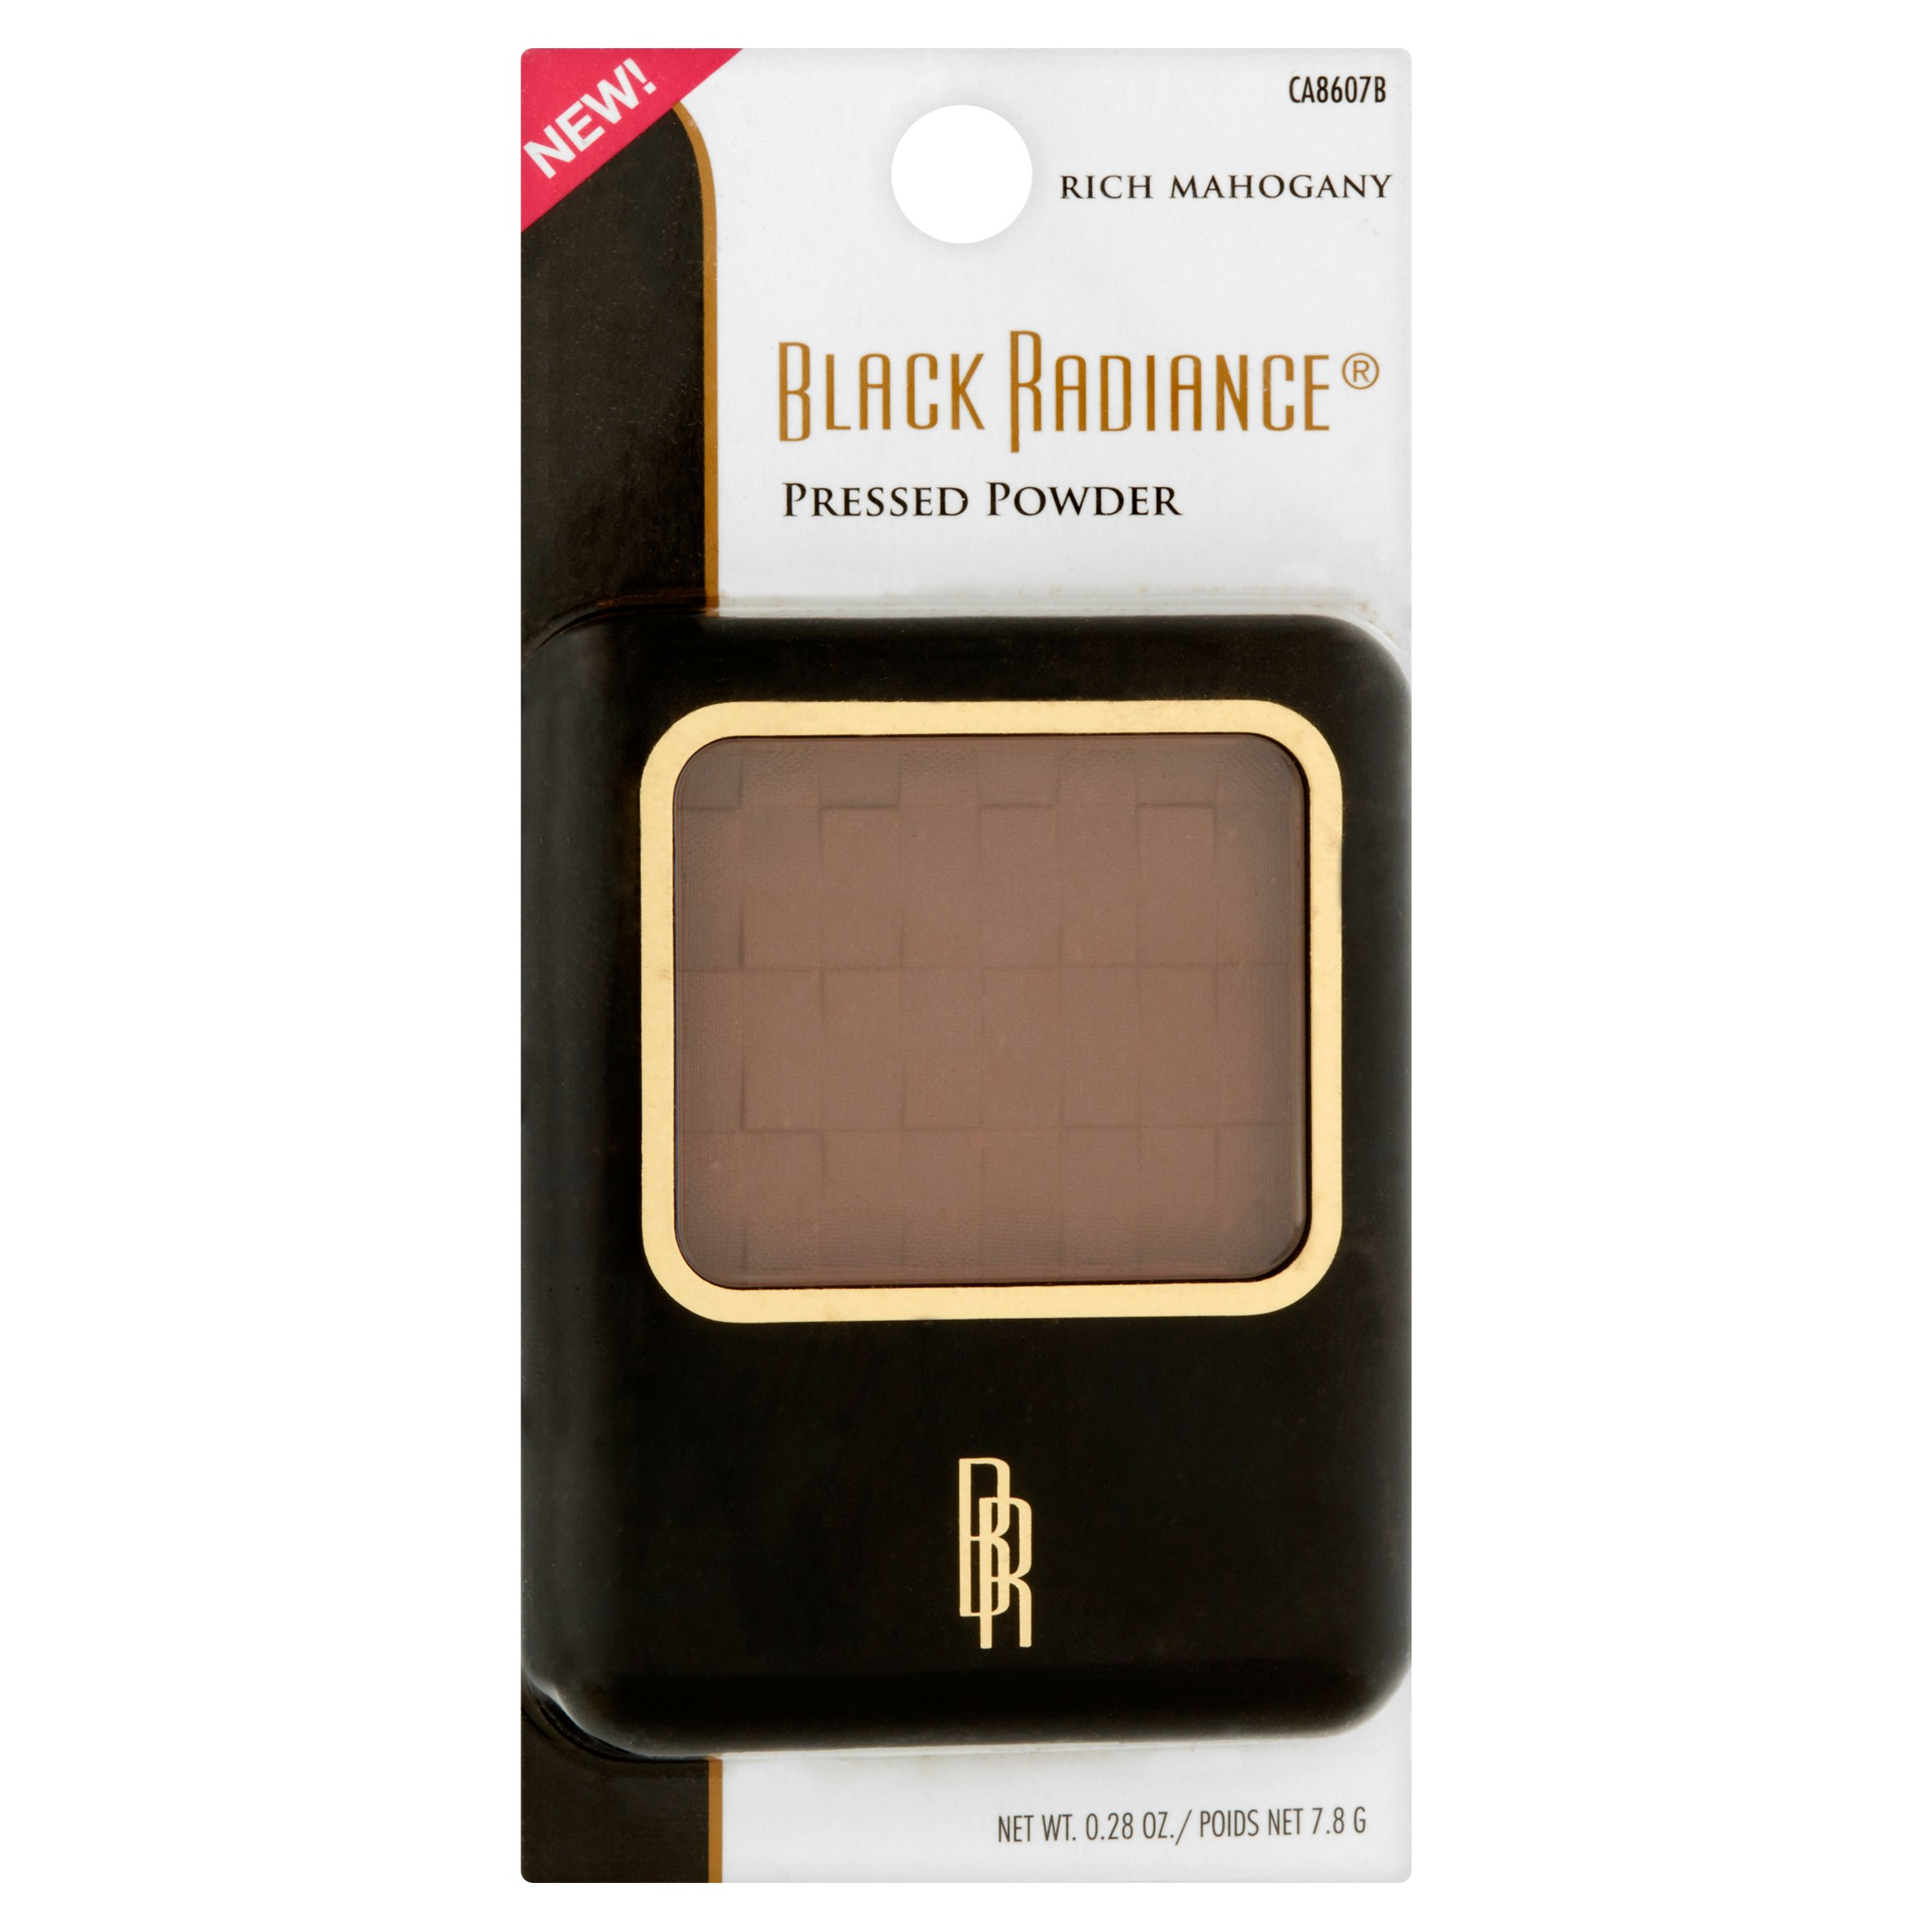 Black Radiance CA8607B Rich Mahogany Pressed Powder, 0.28 oz